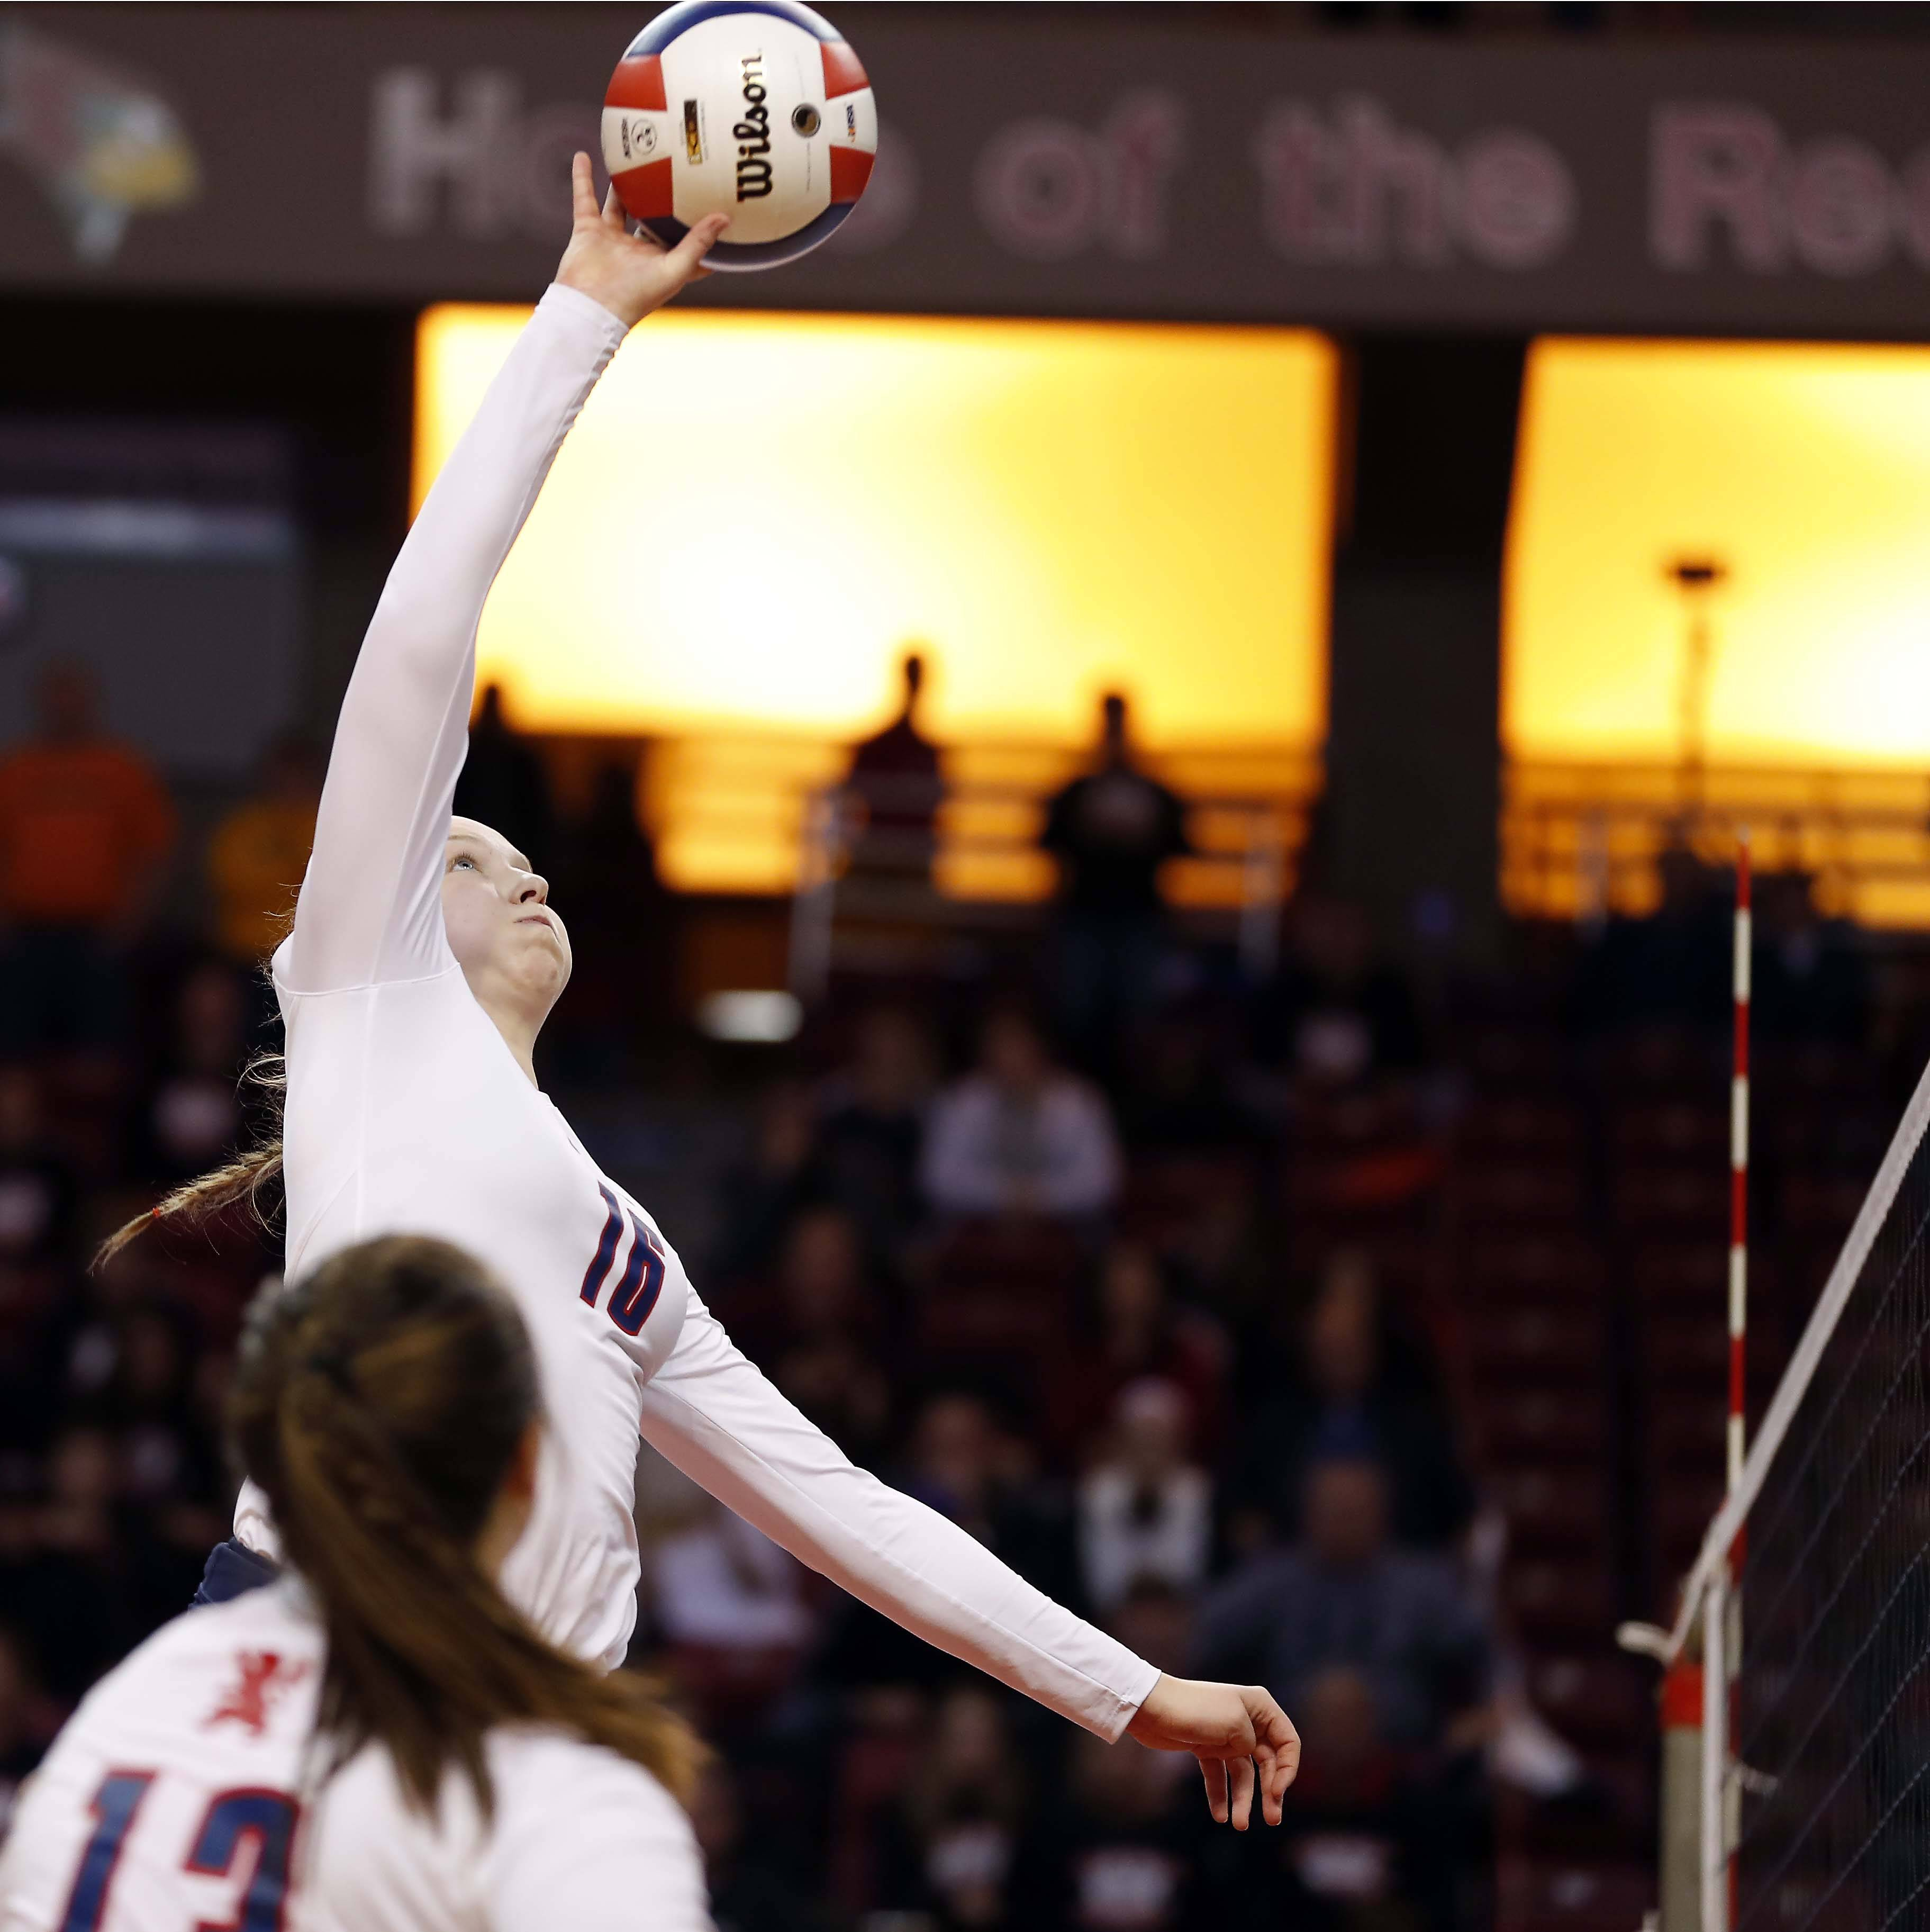 St. Viator's Kate Nottoli (16) in the semifinals of the IHSA Class 3A state girls volleyball tournament at Redbird Arena in Normal.